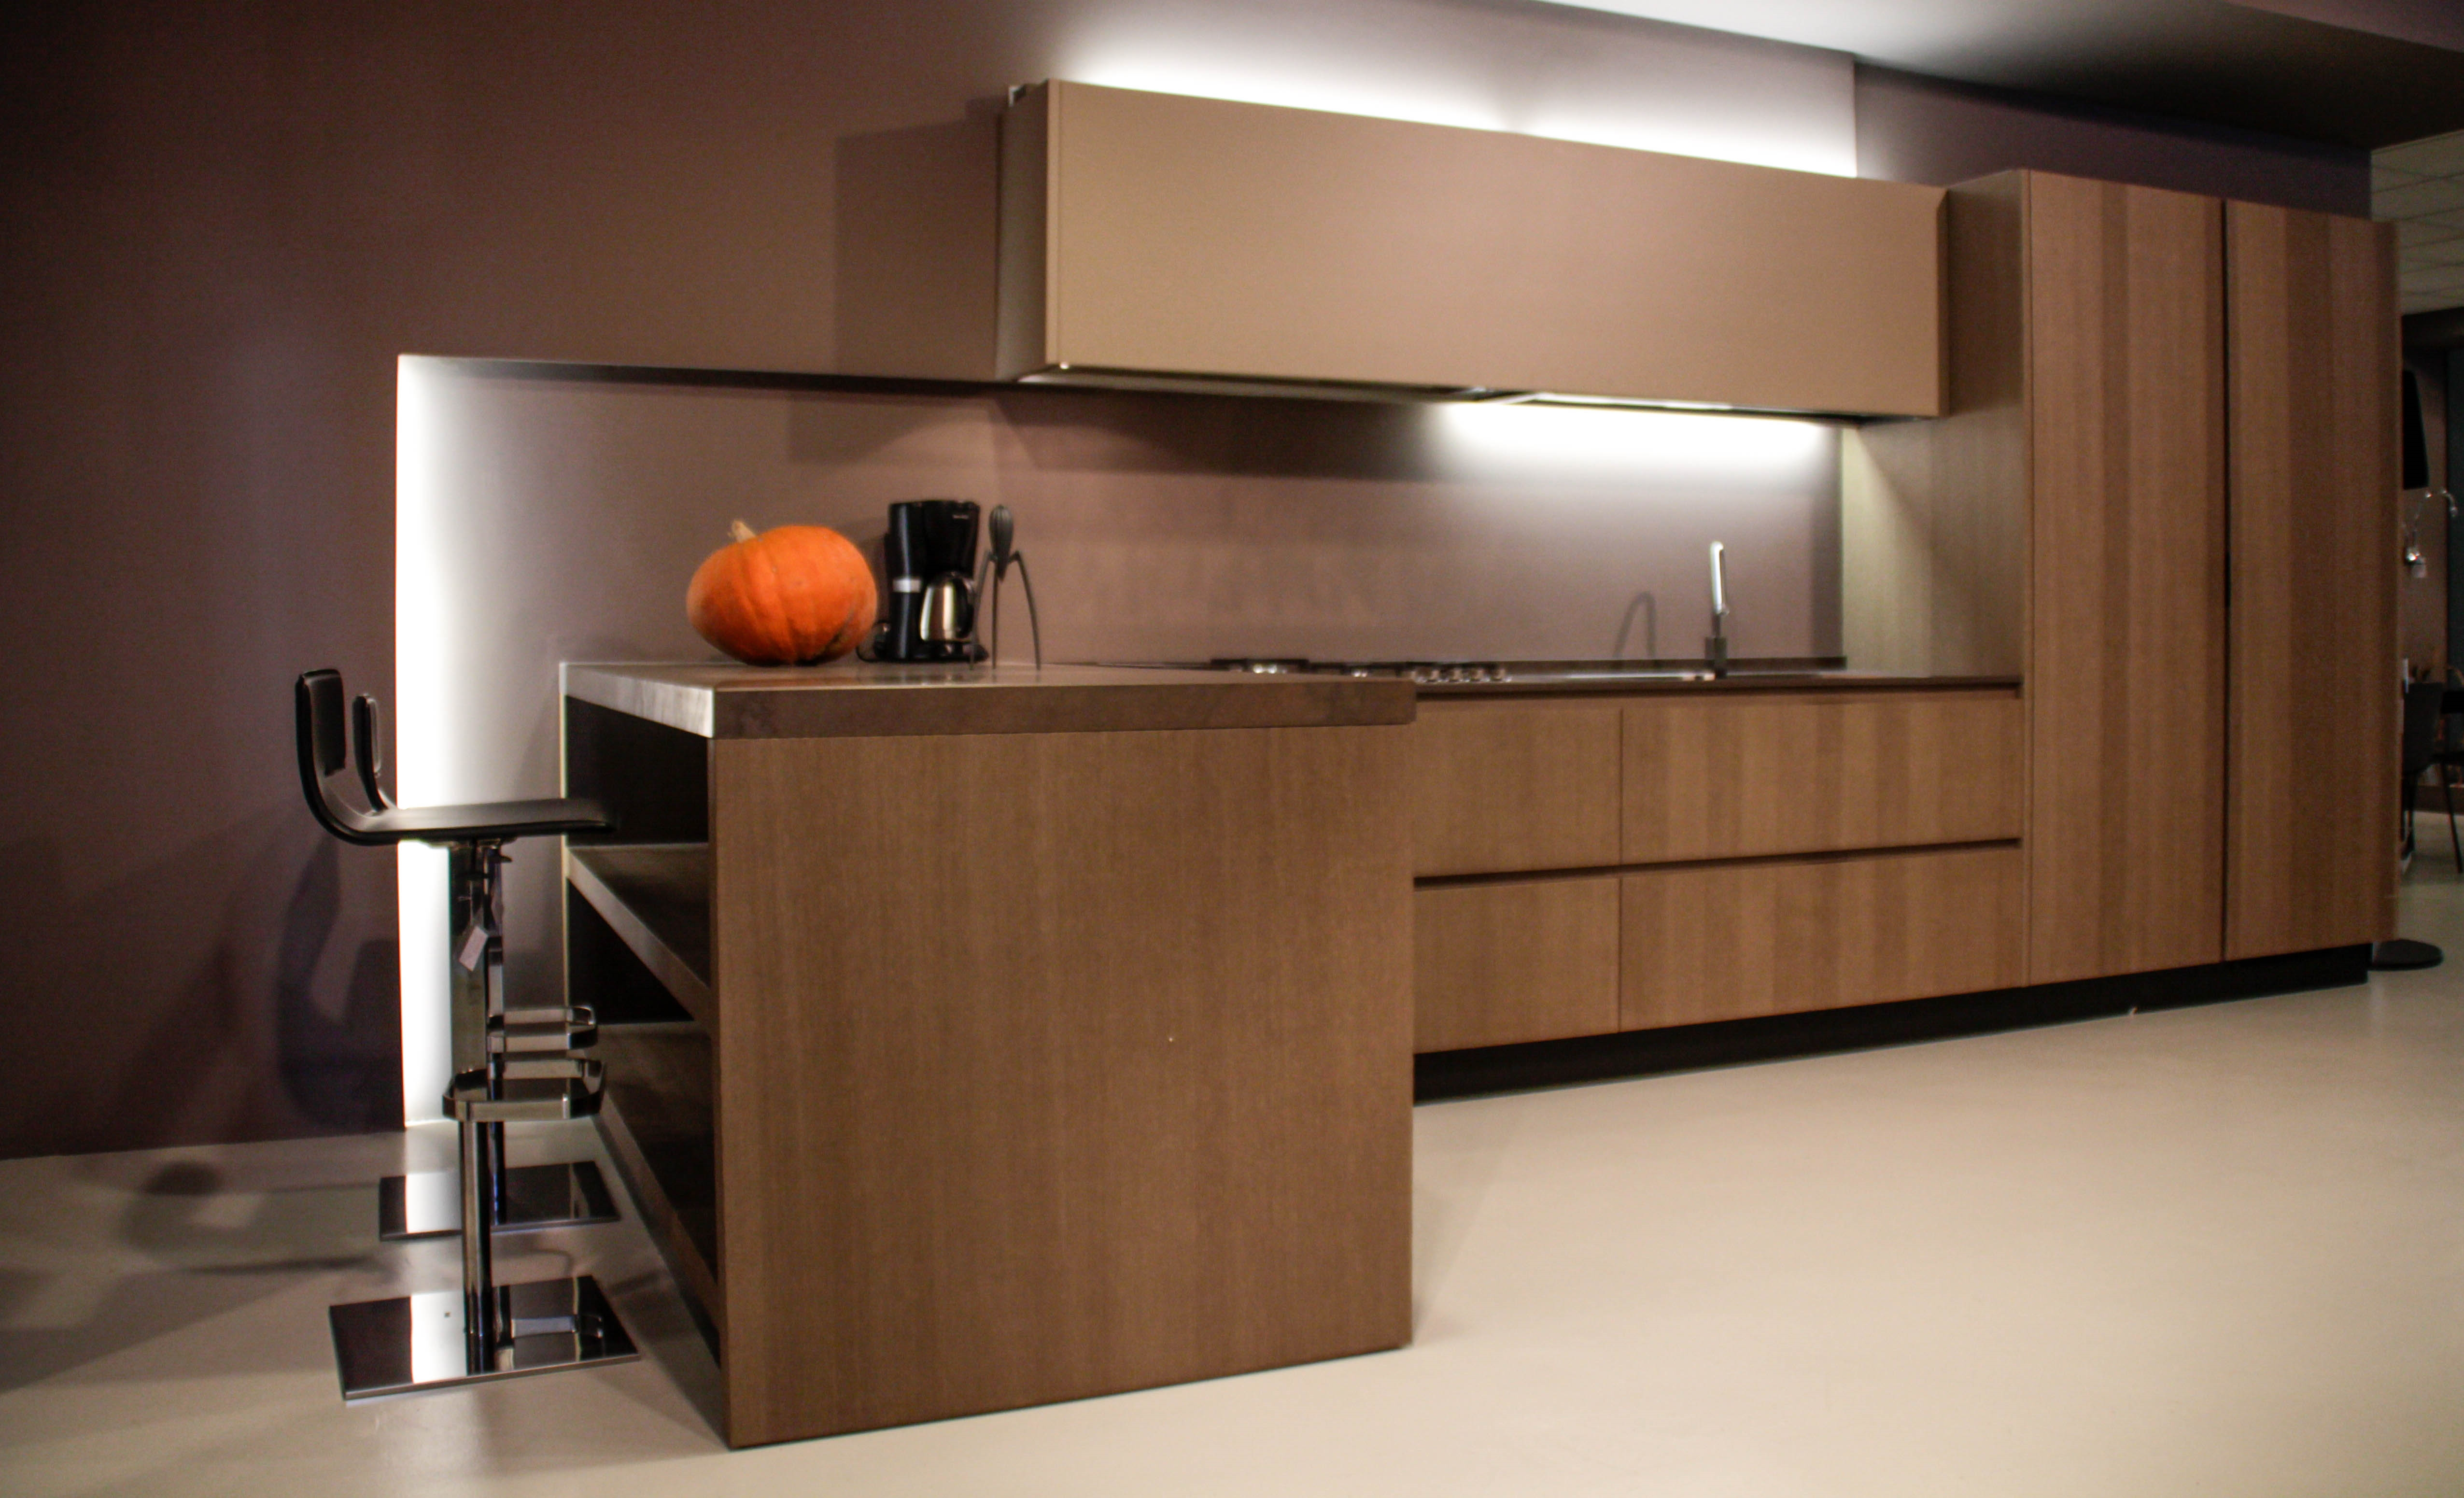 Emejing Cucine On Line Gallery - ubiquitousforeigner.us ...